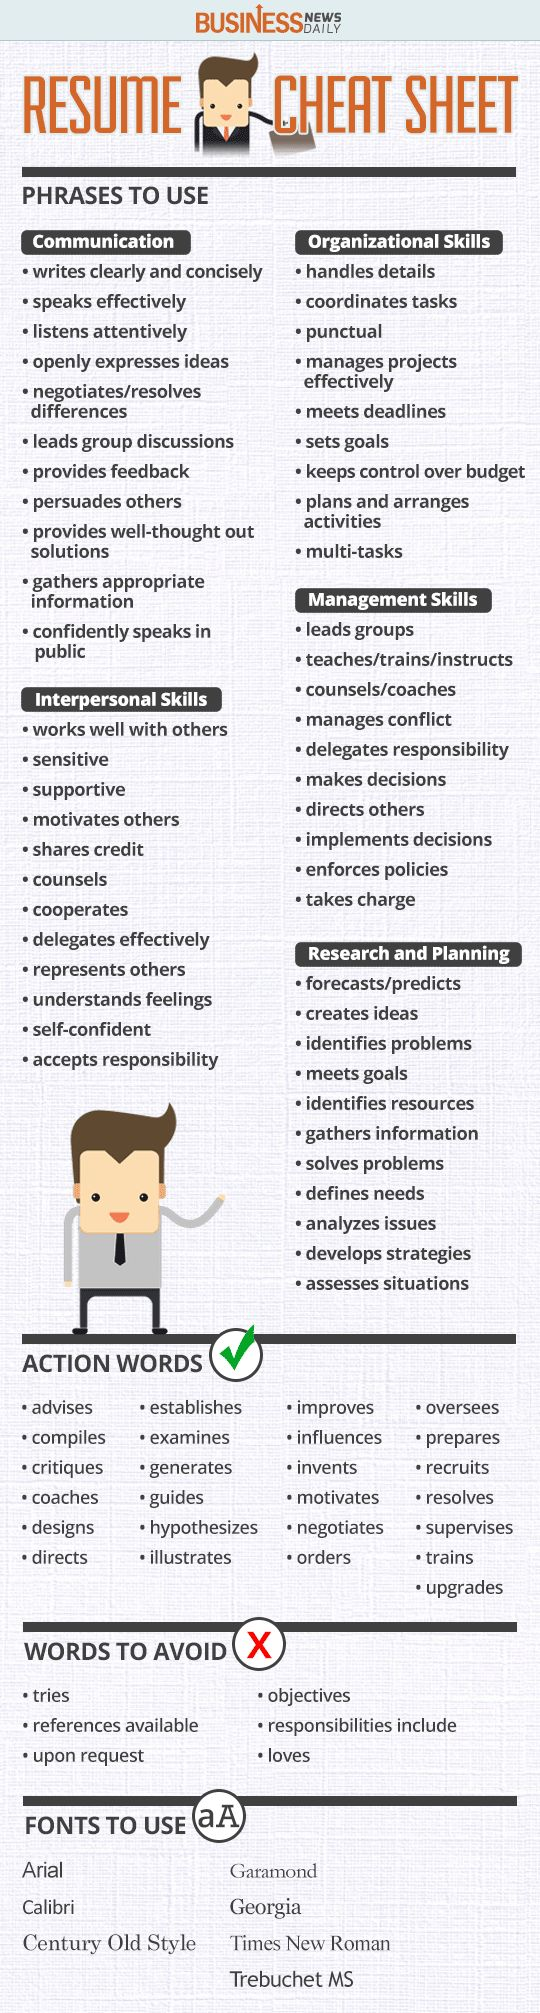 Opposenewapstandardsus  Splendid  Ideas About Resume On Pinterest  Cv Format Resume Cv And  With Outstanding Resume Cheat Sheet Infographic Andrews Almost Done With A Complete Unit On Employment Which With Archaic Social Work Resume Objective Statements Also Skills For Sales Resume In Addition Entry Level Resume Example And Maintenance Job Resume As Well As Examples Of An Objective On A Resume Additionally Email Resume Examples From Pinterestcom With Opposenewapstandardsus  Outstanding  Ideas About Resume On Pinterest  Cv Format Resume Cv And  With Archaic Resume Cheat Sheet Infographic Andrews Almost Done With A Complete Unit On Employment Which And Splendid Social Work Resume Objective Statements Also Skills For Sales Resume In Addition Entry Level Resume Example From Pinterestcom